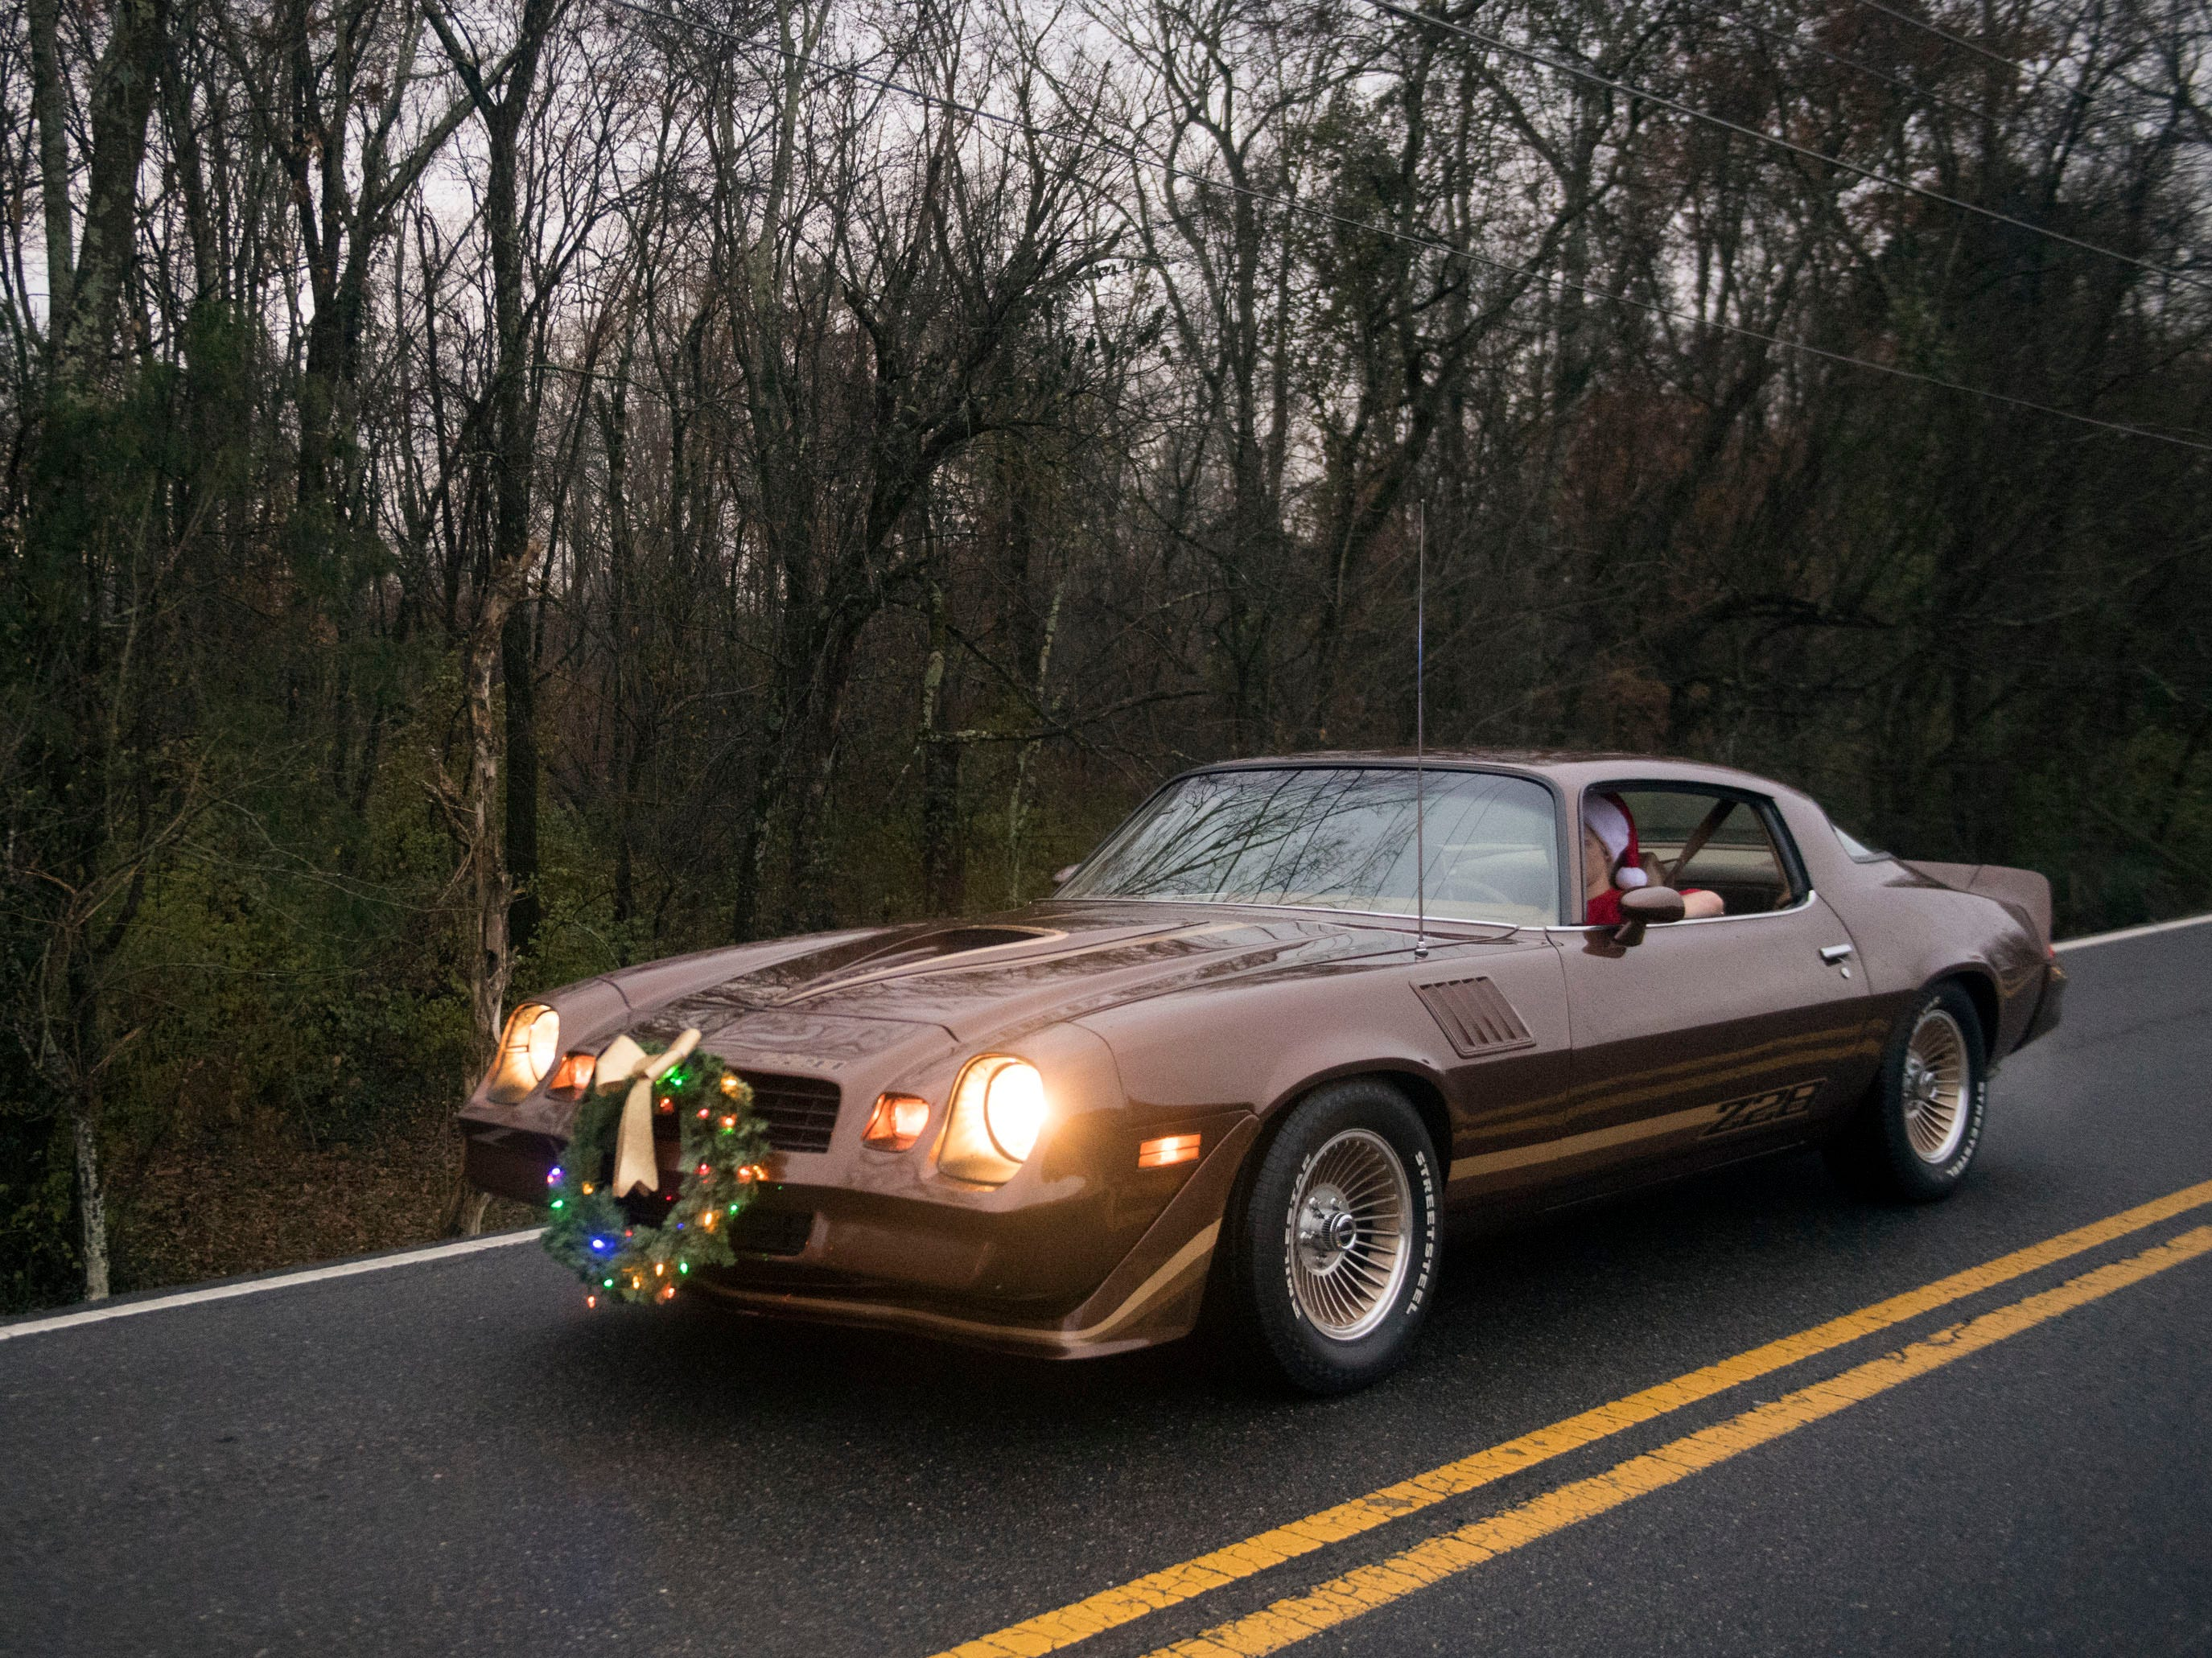 Camaro Z28 in the Powell Lions Club Christmas Parade on Saturday, December 1, 2018.